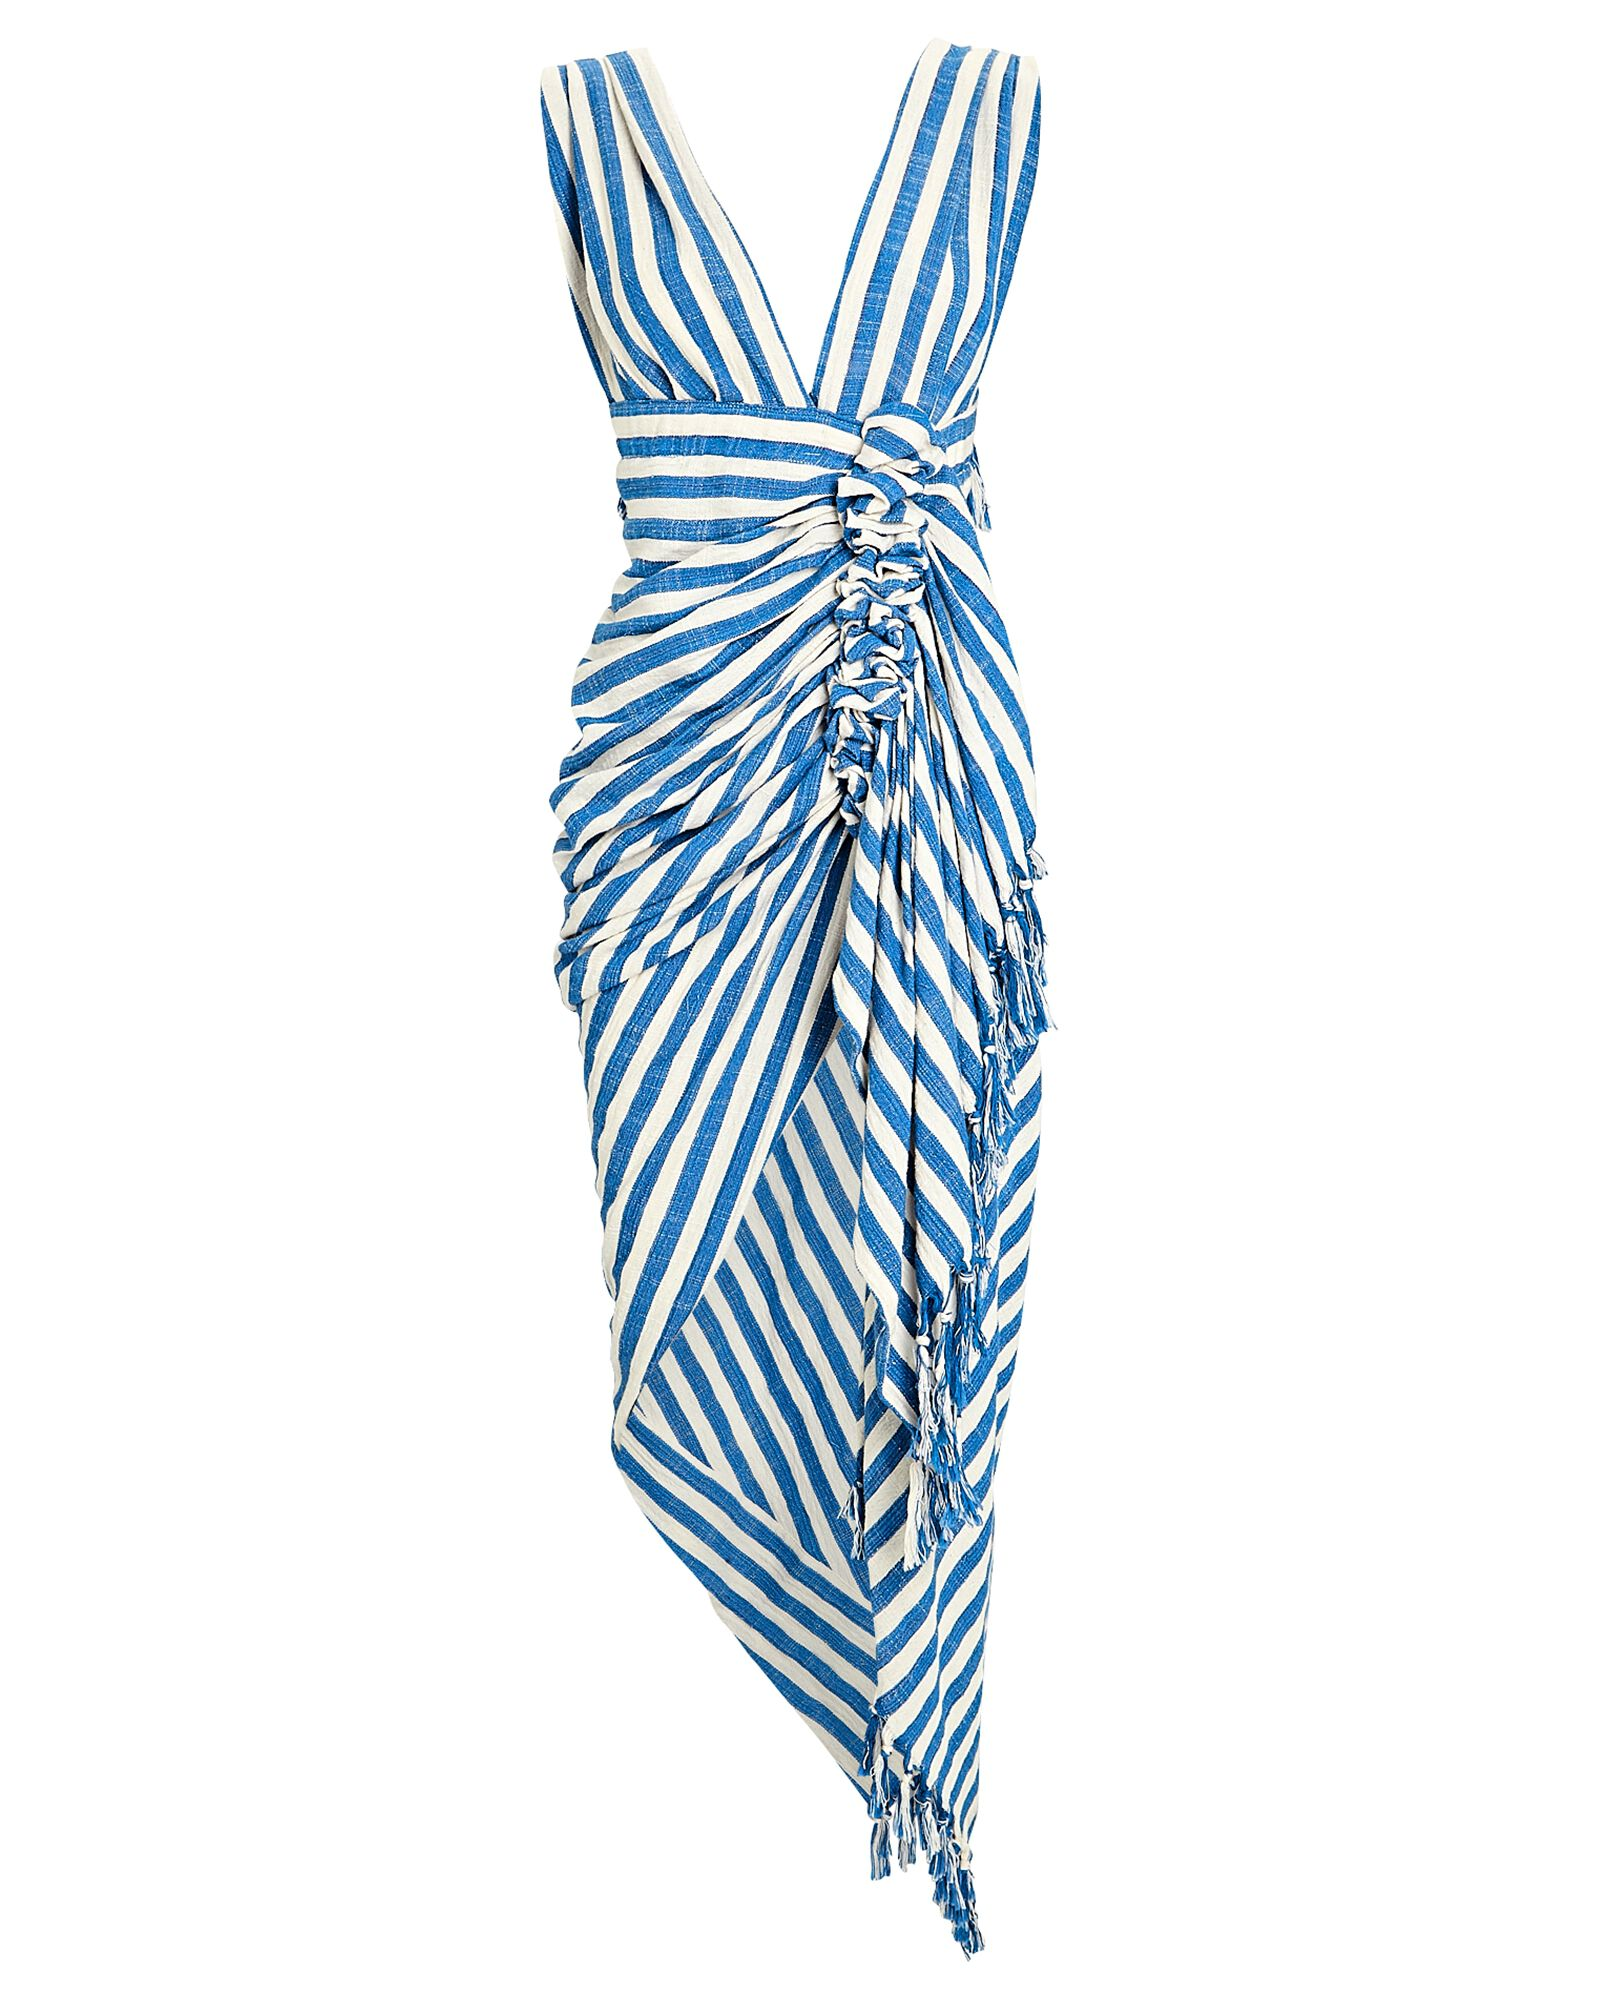 Tulum Ruched High-Low Dress, BLUE/IVORY, hi-res